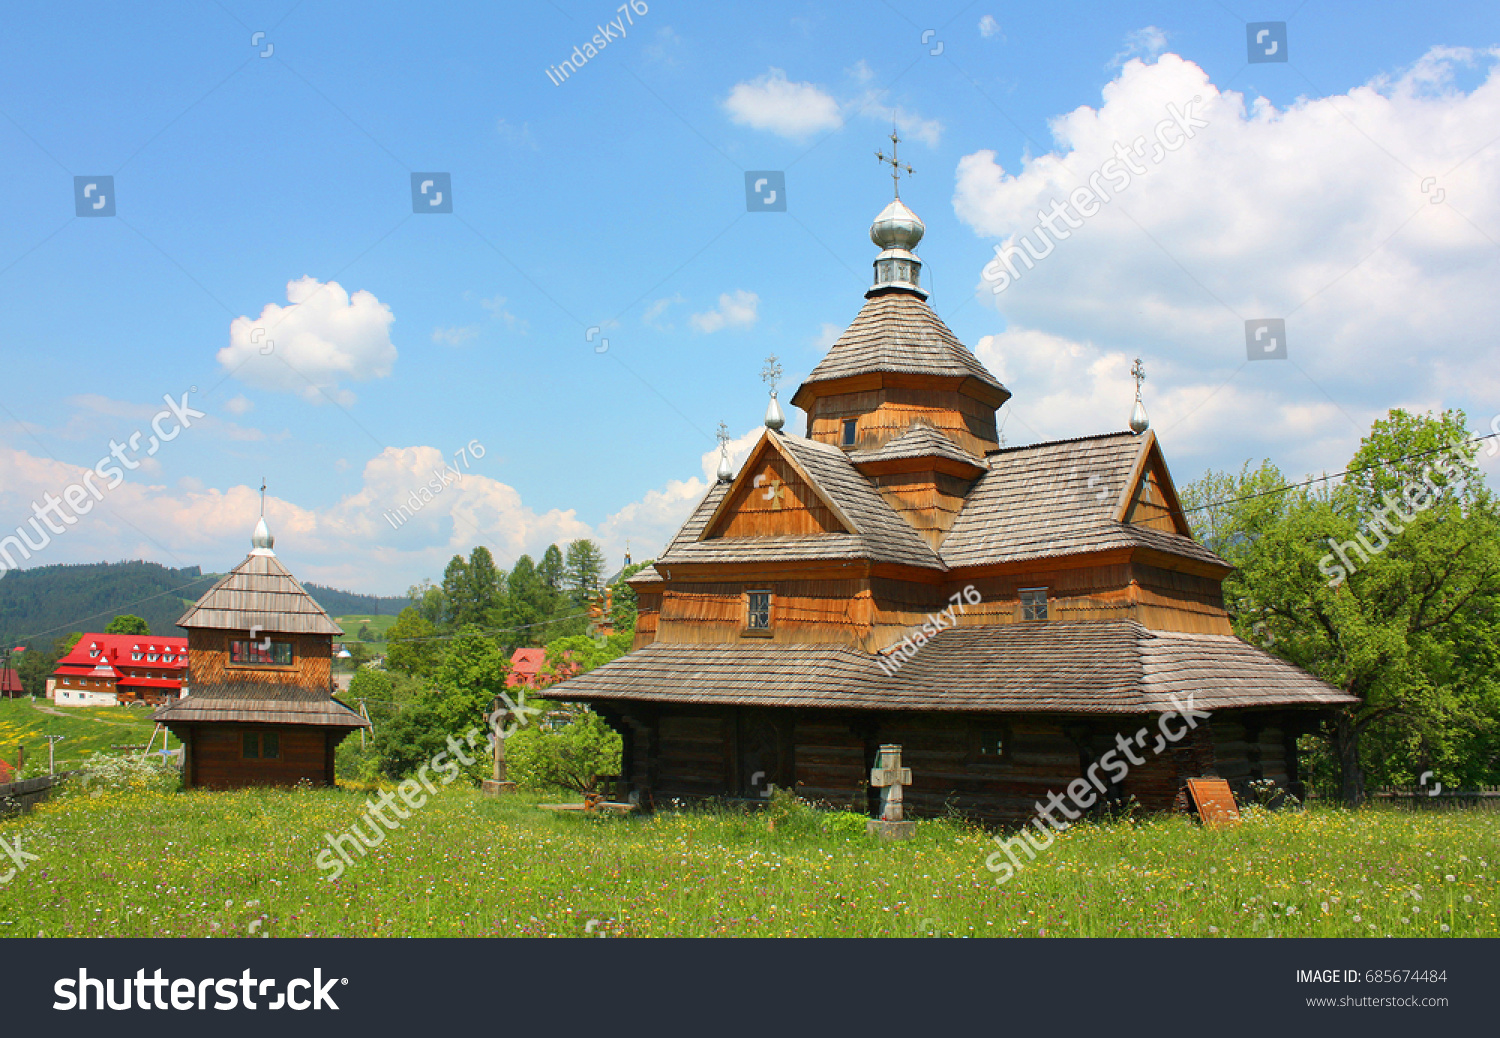 Verkhovyna: a selection of sites